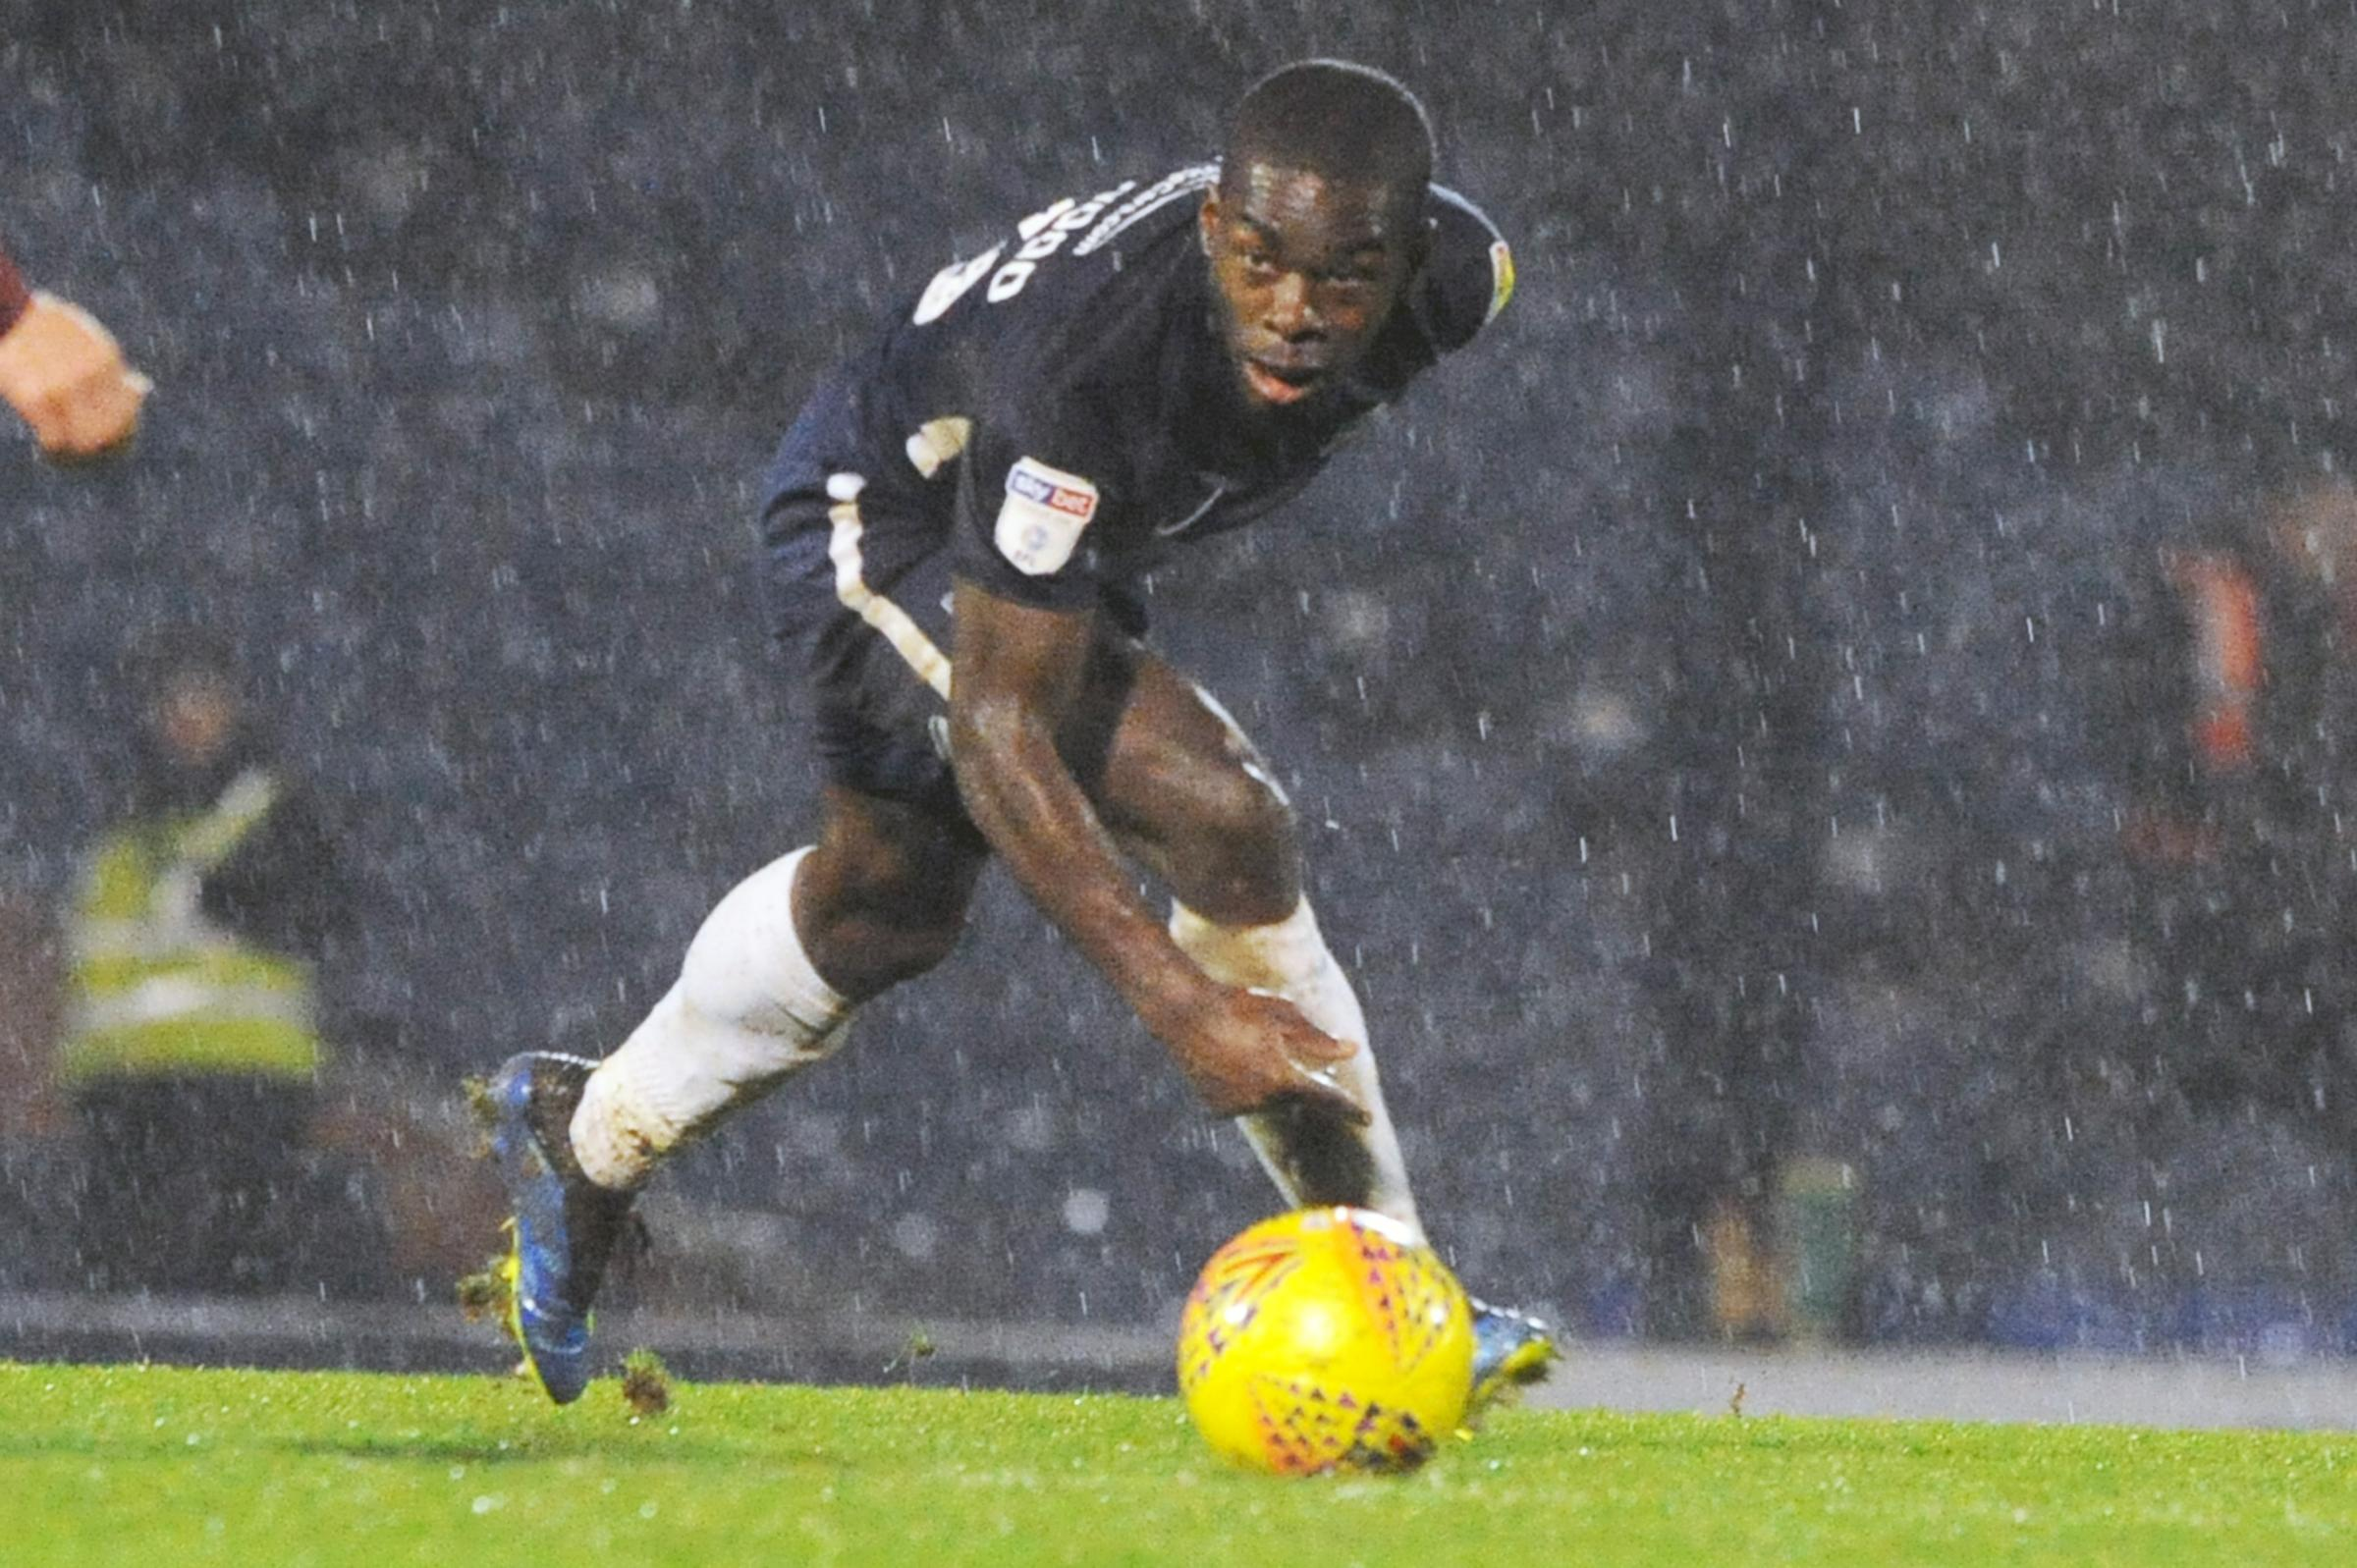 Landmark - Southend United midfielder Dru Yearwood will make his 50th appearance for Blues this weekend